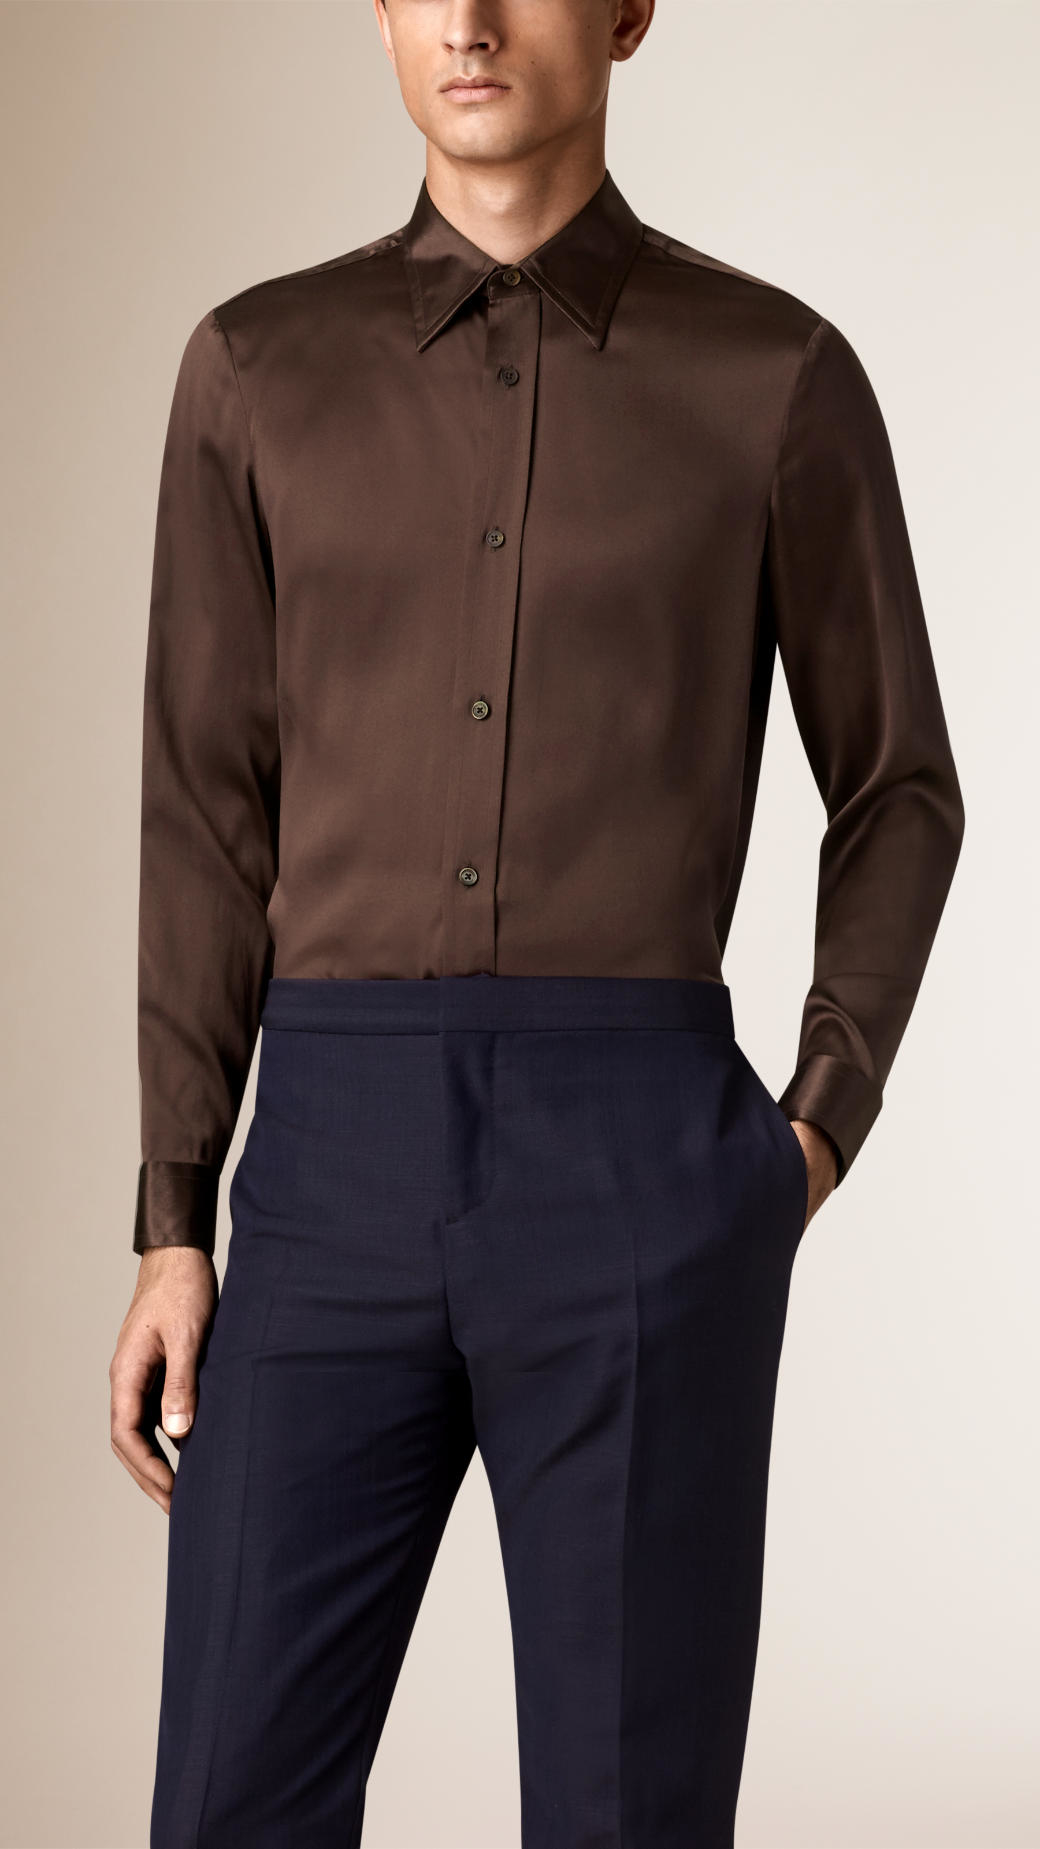 Chocolate colored dress shirts